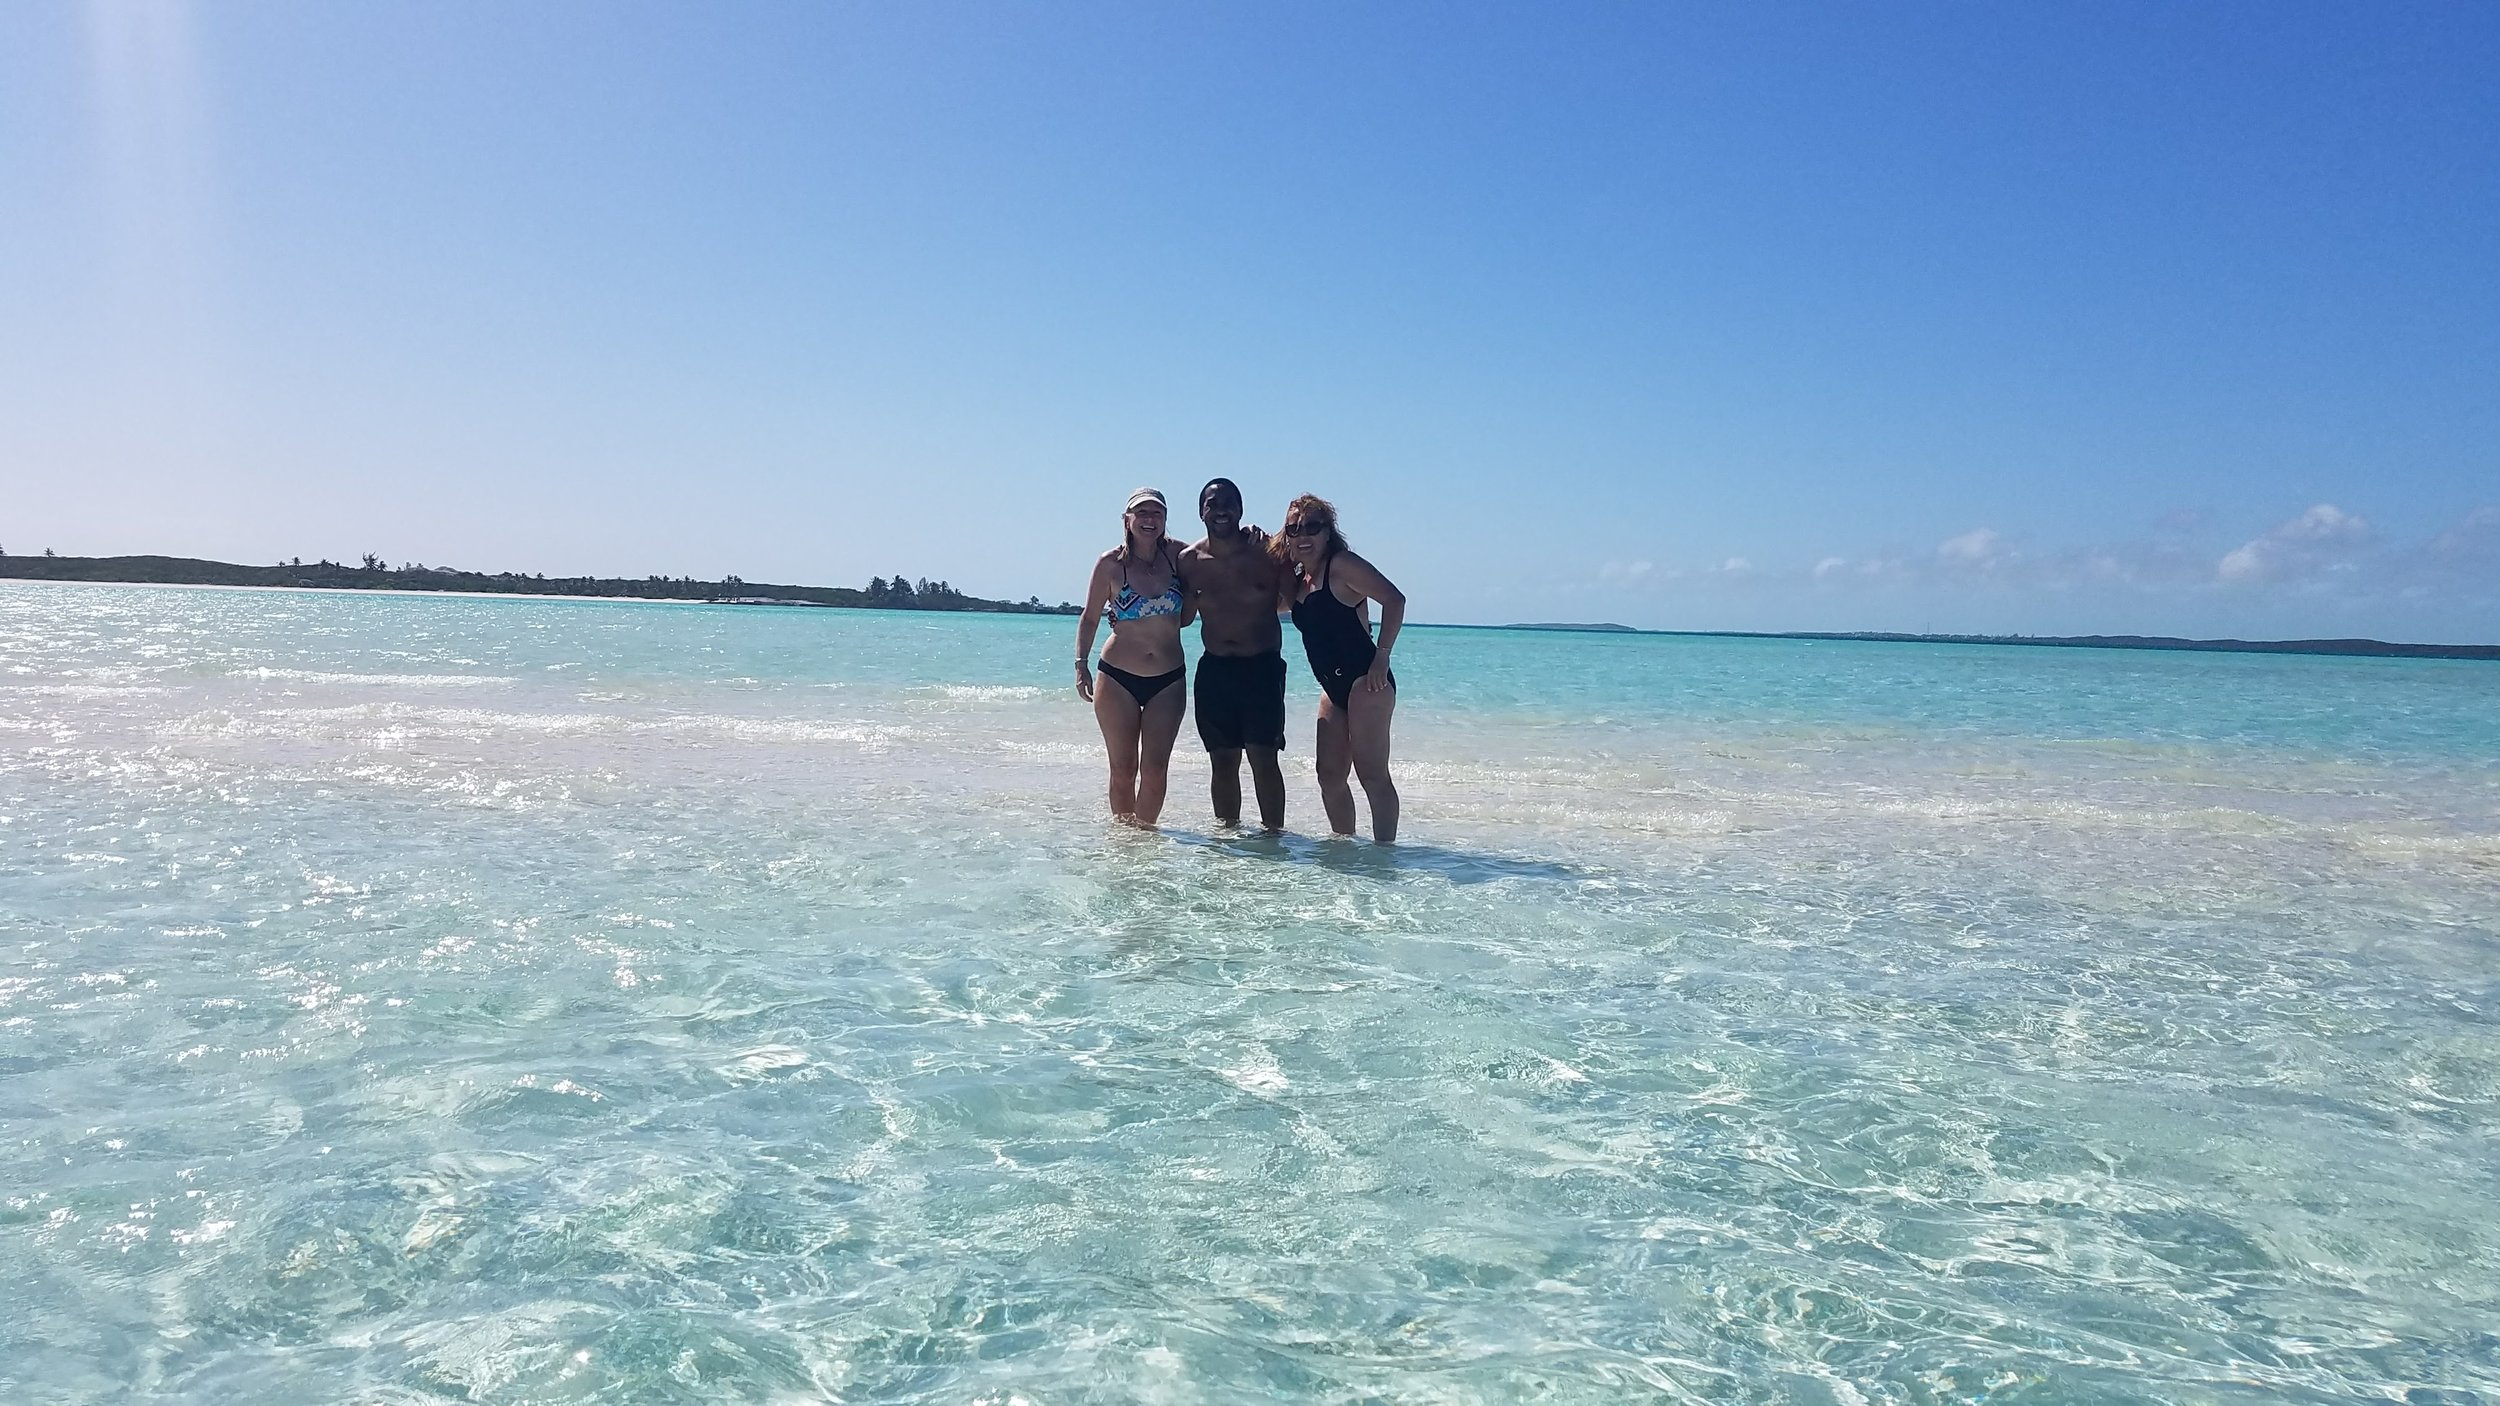 Standing on a Sand Bar in the middle of the Caribbean in the Exuma Keys